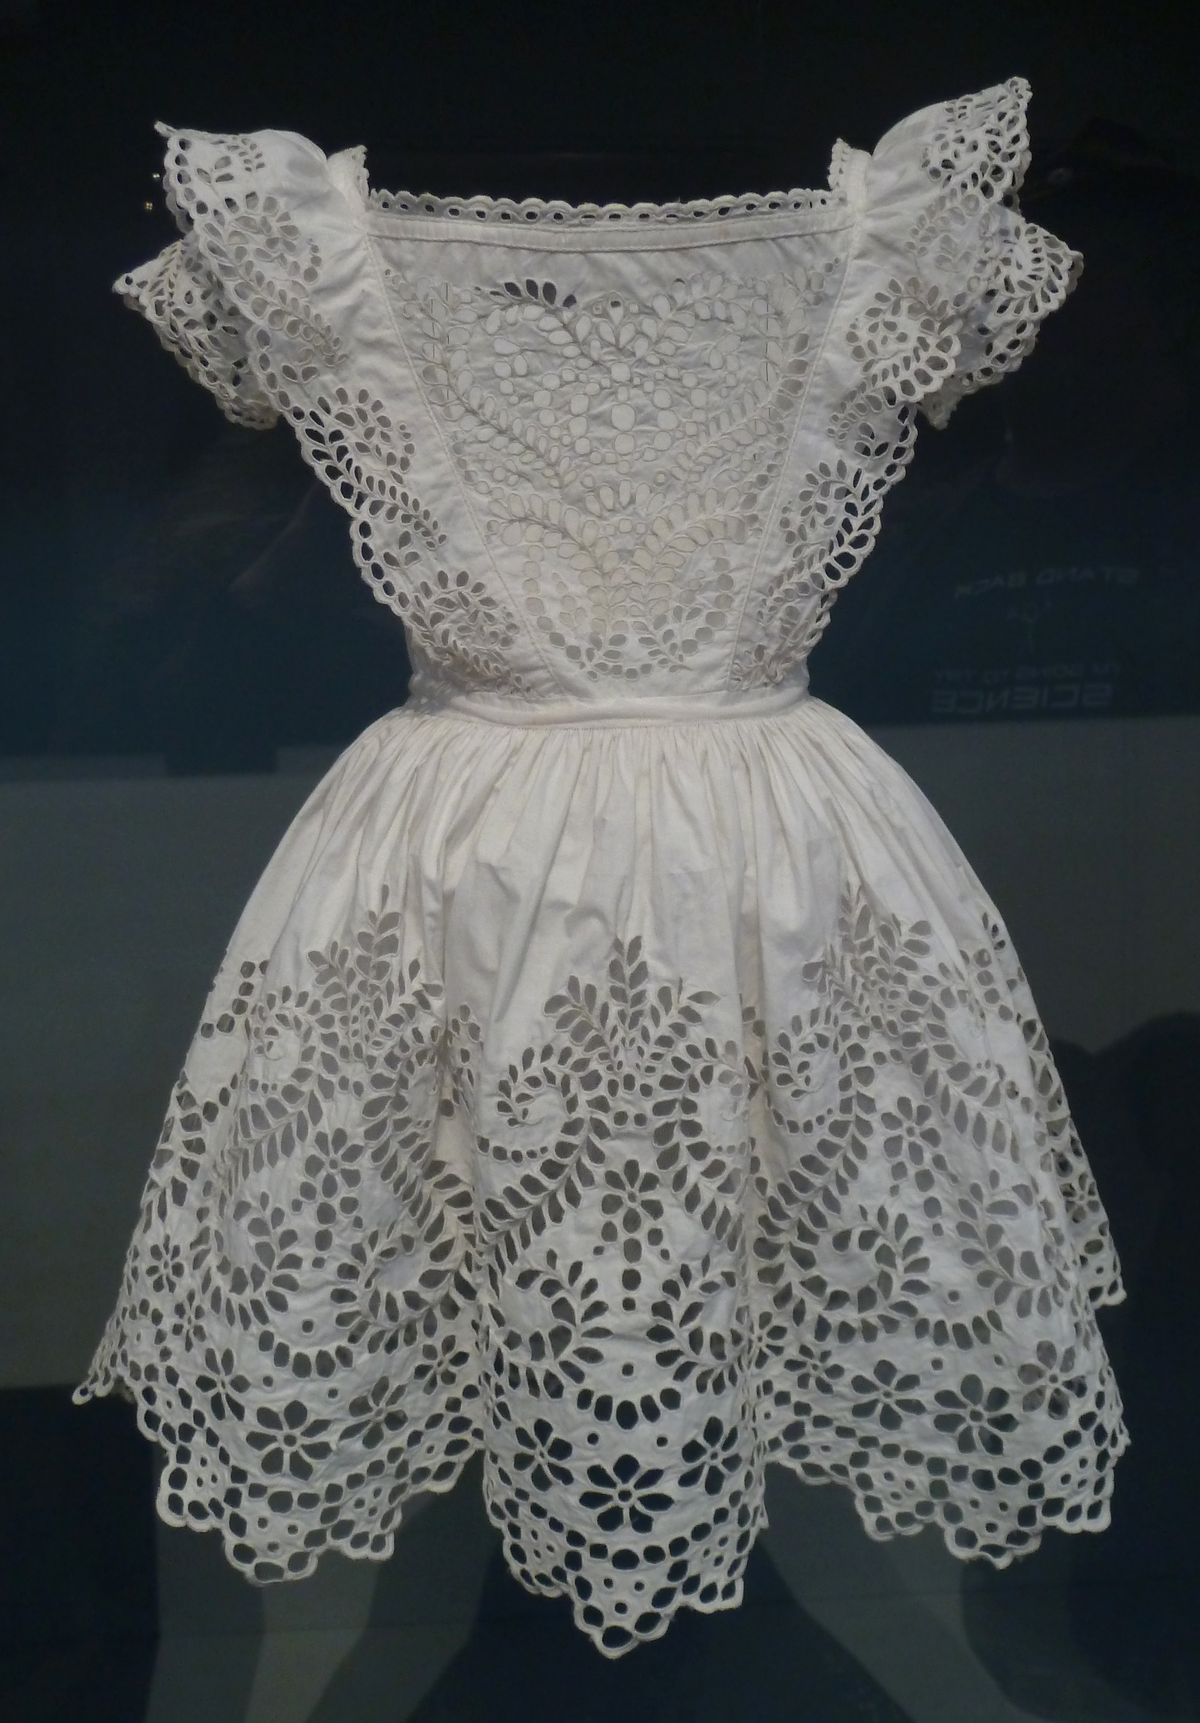 Broderie Anglaise Wikipedia